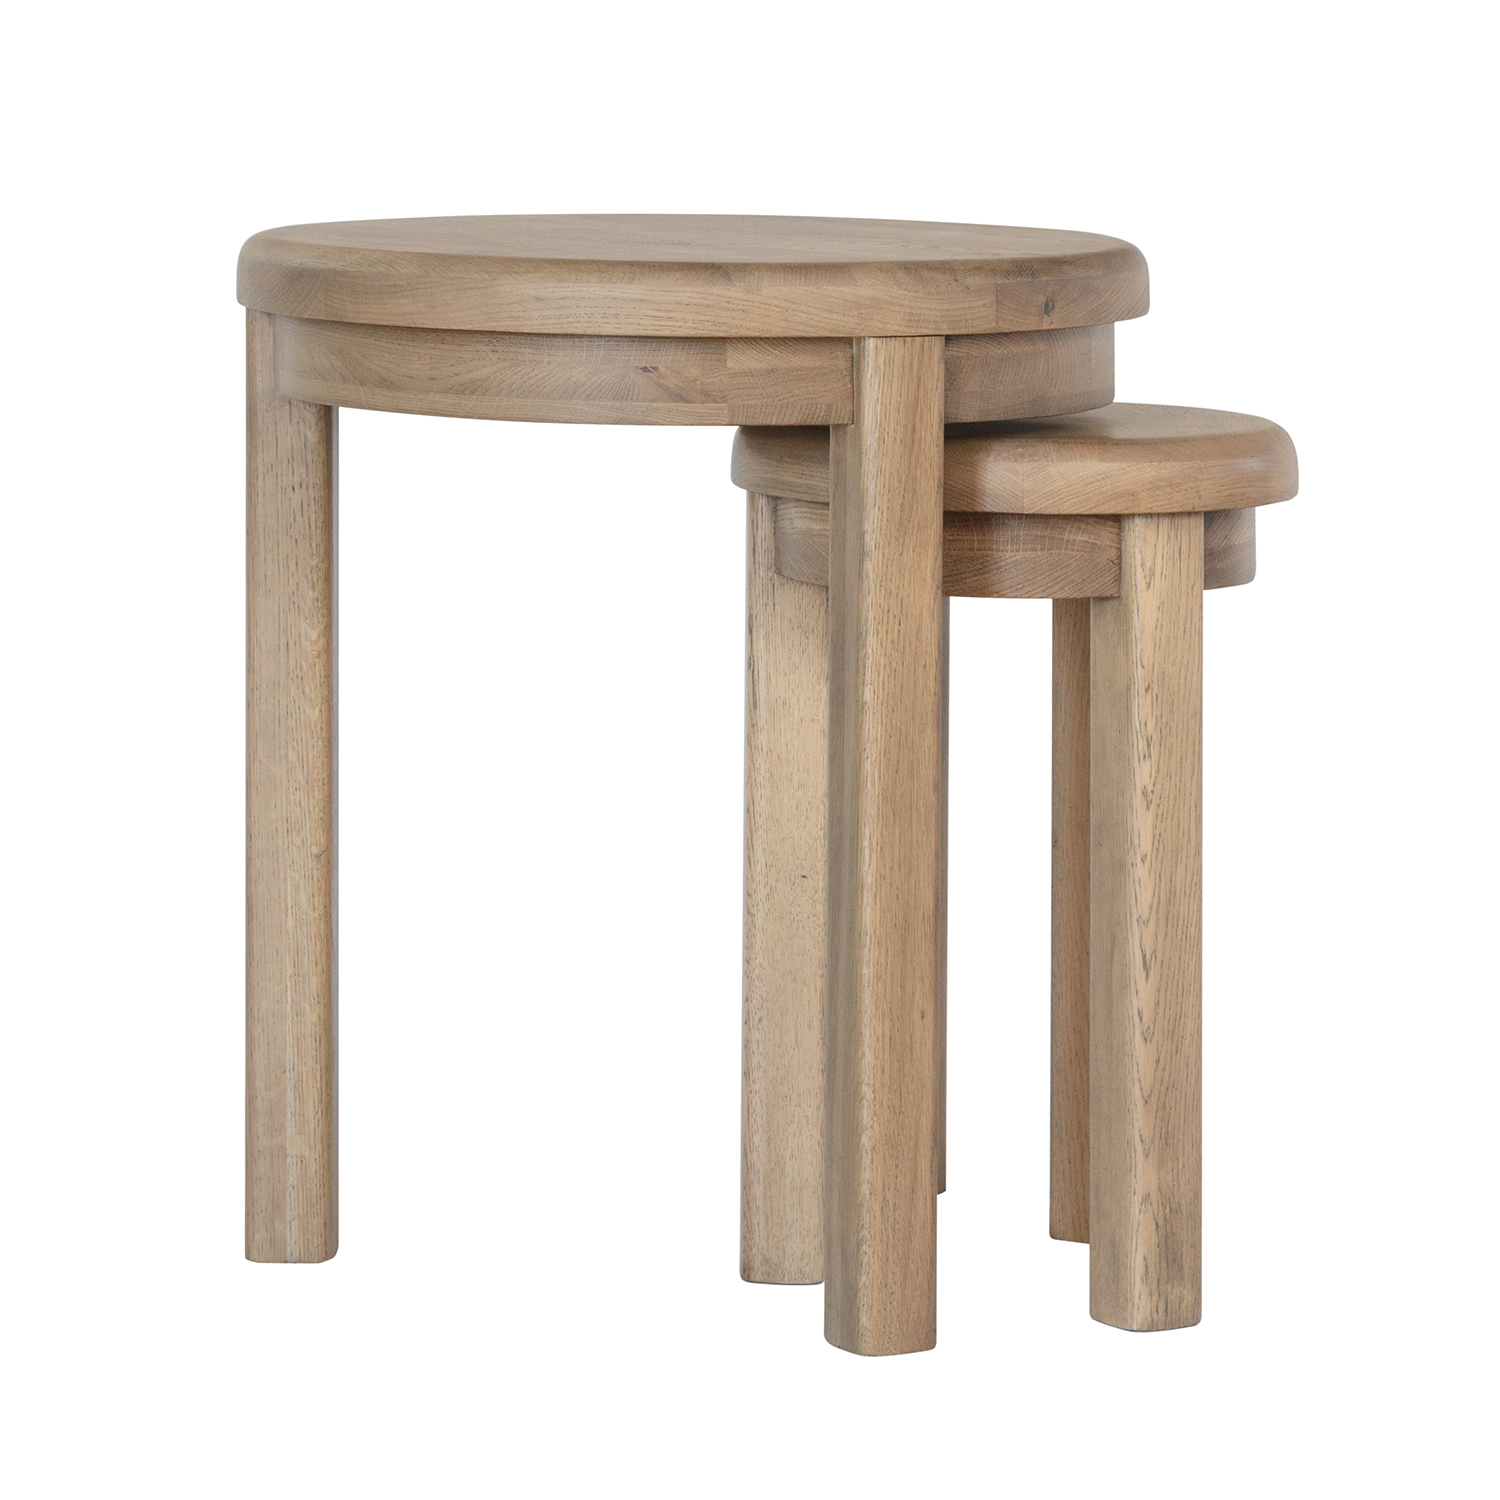 Heritage Oak Round Nest of Tables